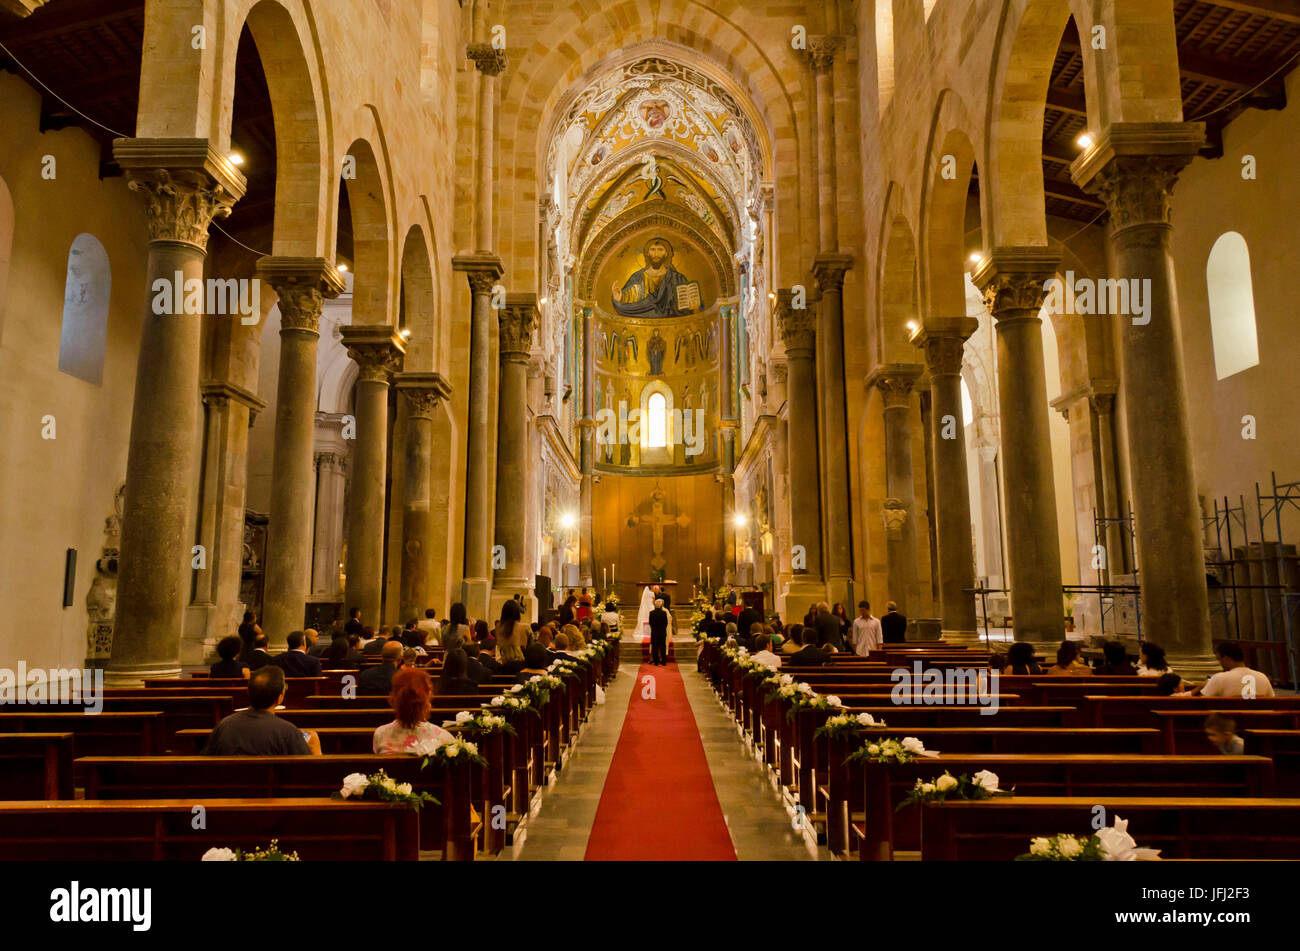 Italy, southern Italy, Sicily, Sicilia, Cefalú, cathedral San Salvatore - Stock Image